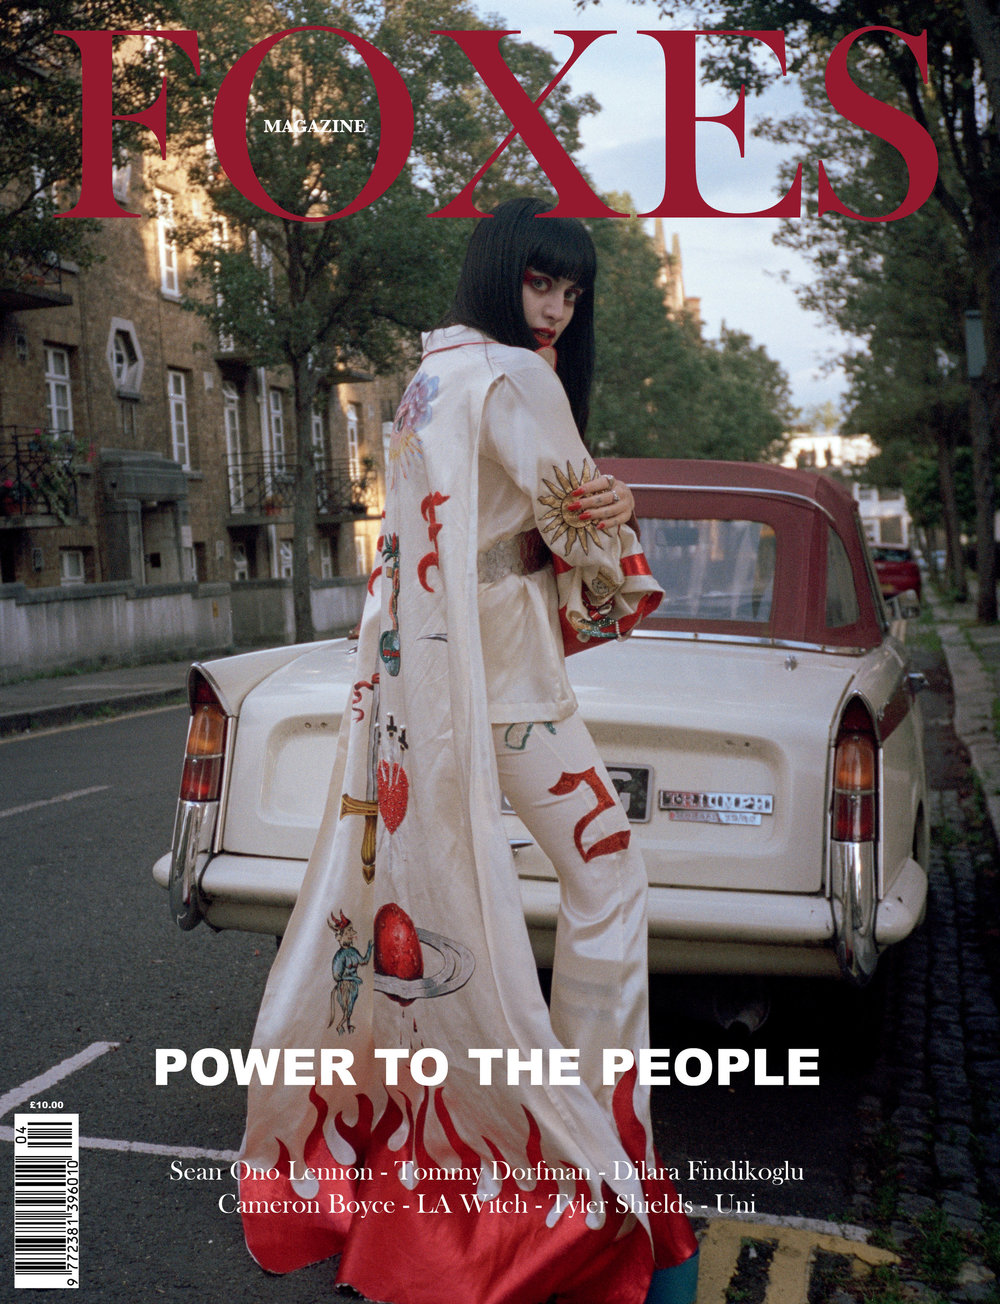 FOXES_MAGAZINE_DILARA_FINDIKOGLU_COVER.jpg